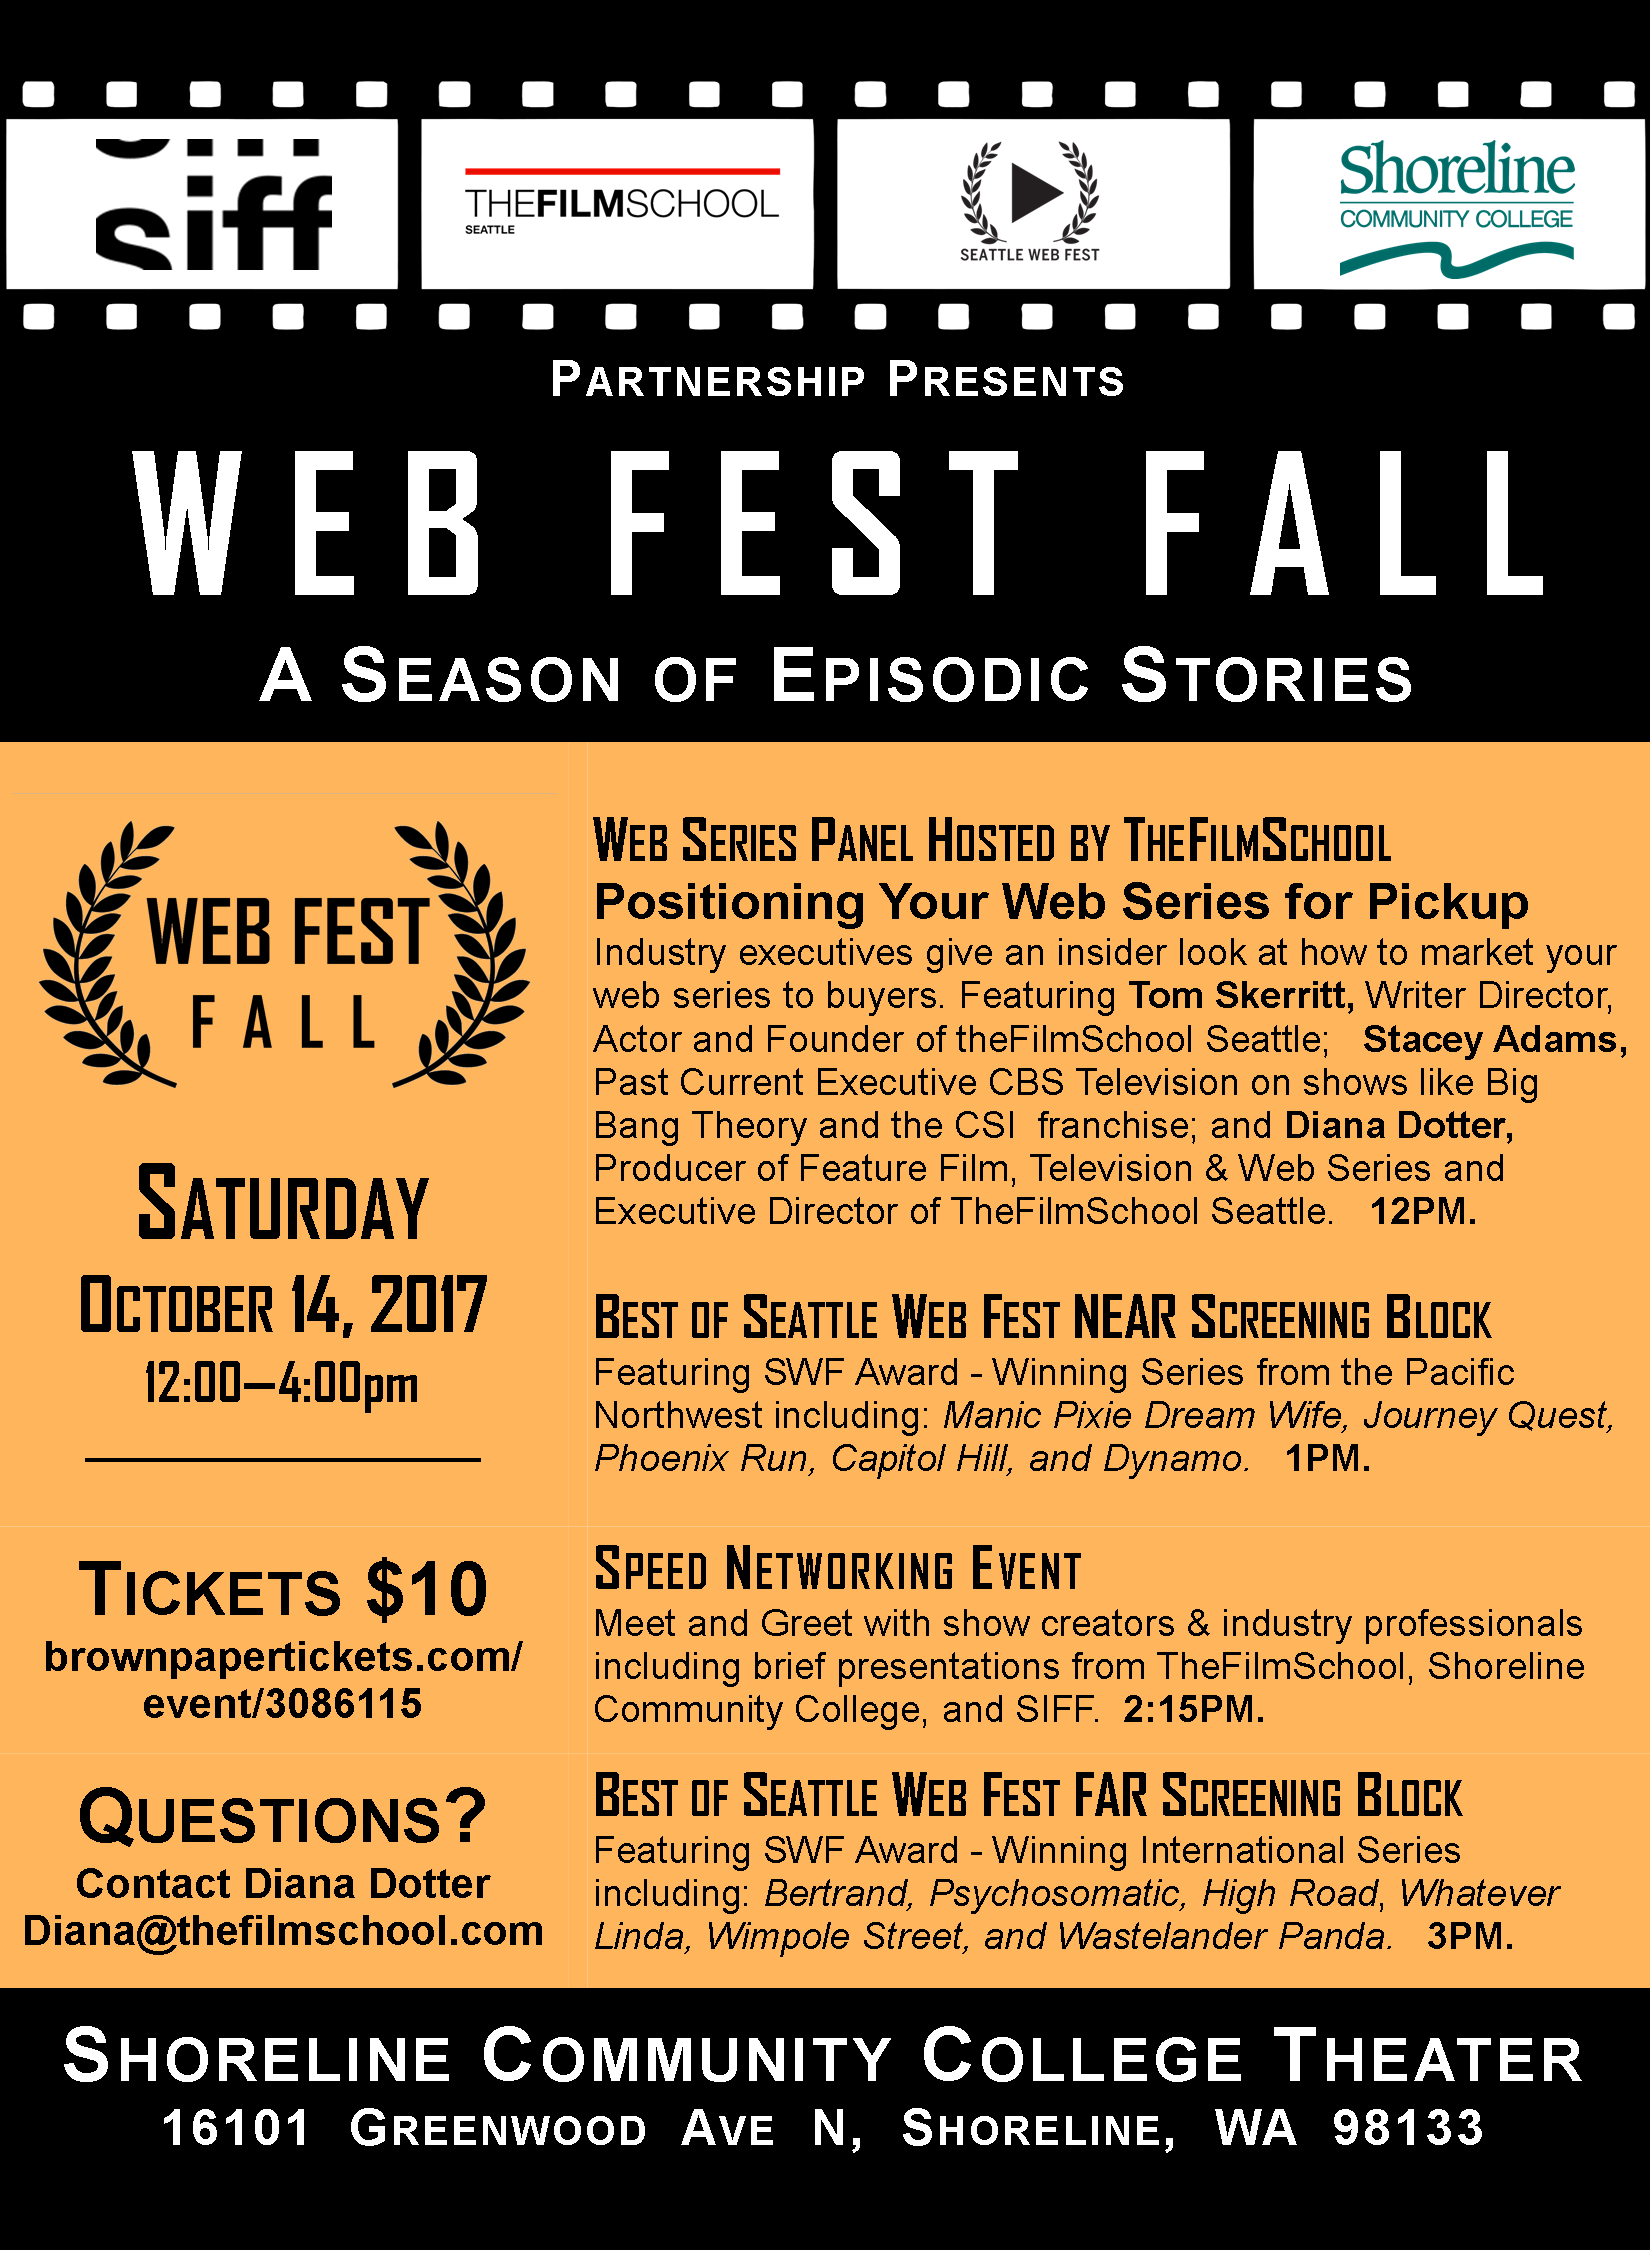 web fest fall poster v4.png